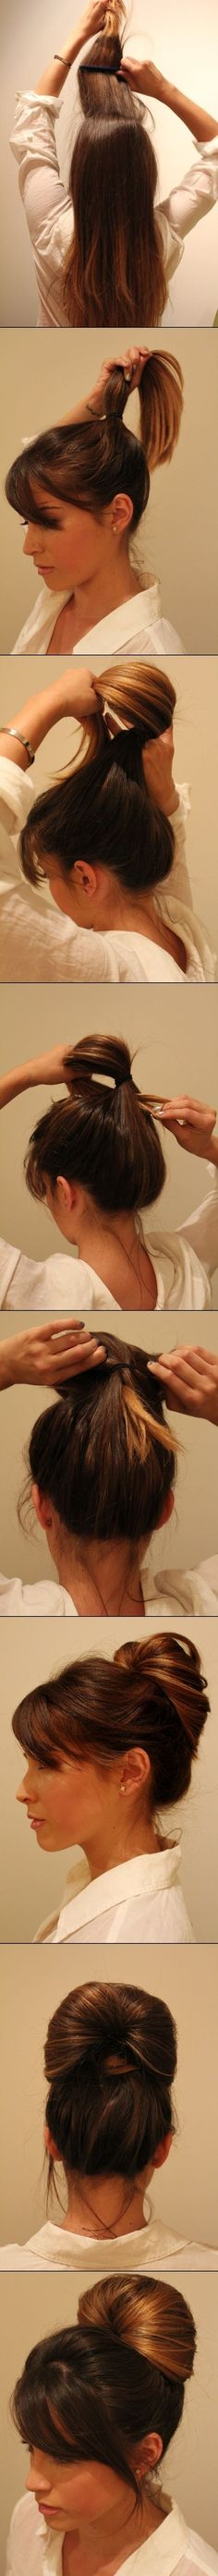 This sleek 'do only takes a minute and looks professional enough for work. | Hairstyling Hacks